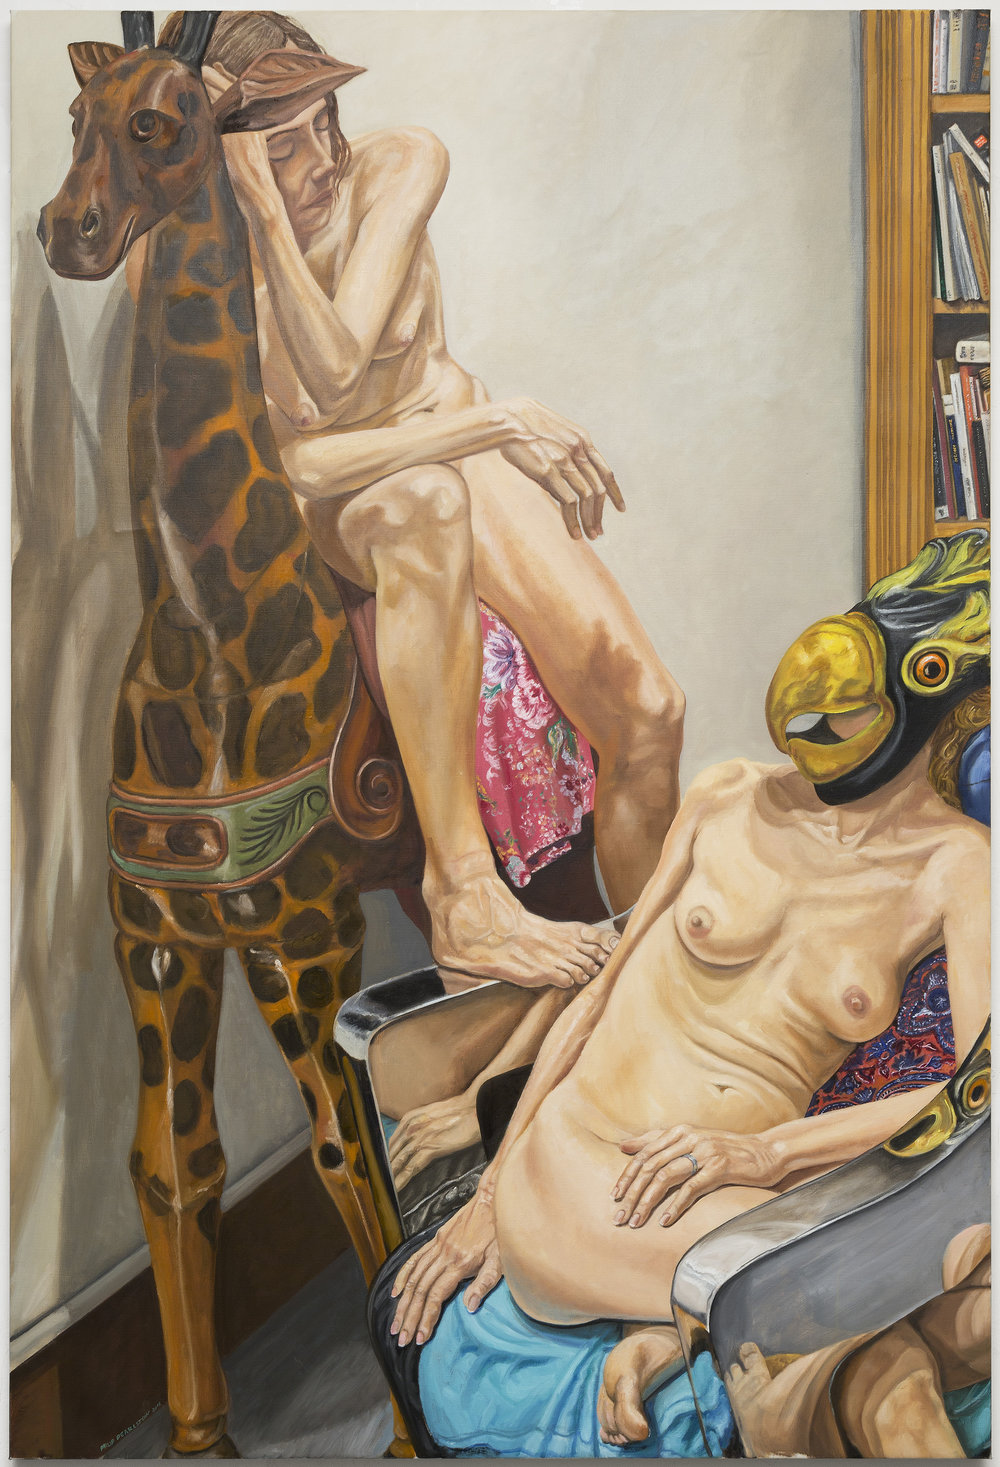 "Two Models with Giraffe, and Bird Masks, Chrome Chair and Book Shelves,  2016 Oil on Canvas 72"" x 48"""